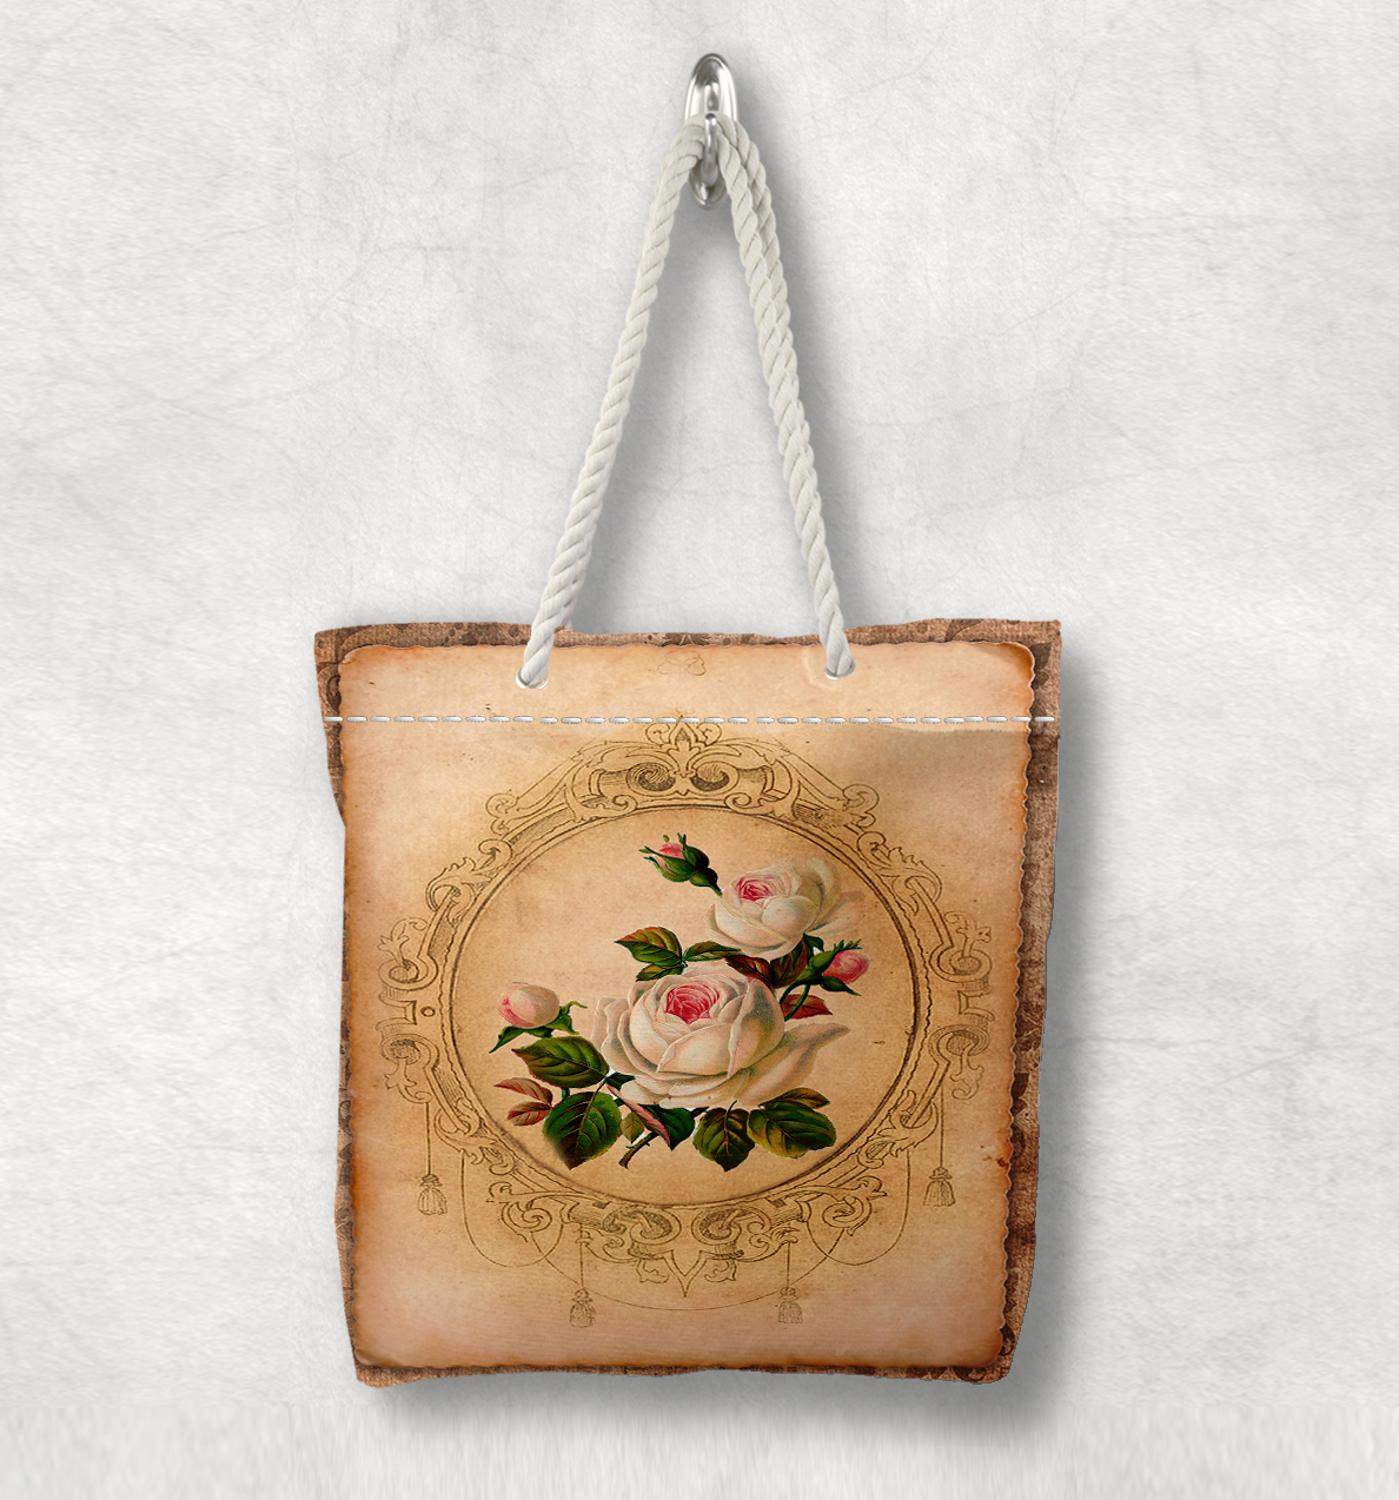 Else Brown Vintage White Roses Flowers New Fashion White Rope Handle Canvas Bag Cotton Canvas Zippered Tote Bag Shoulder Bag